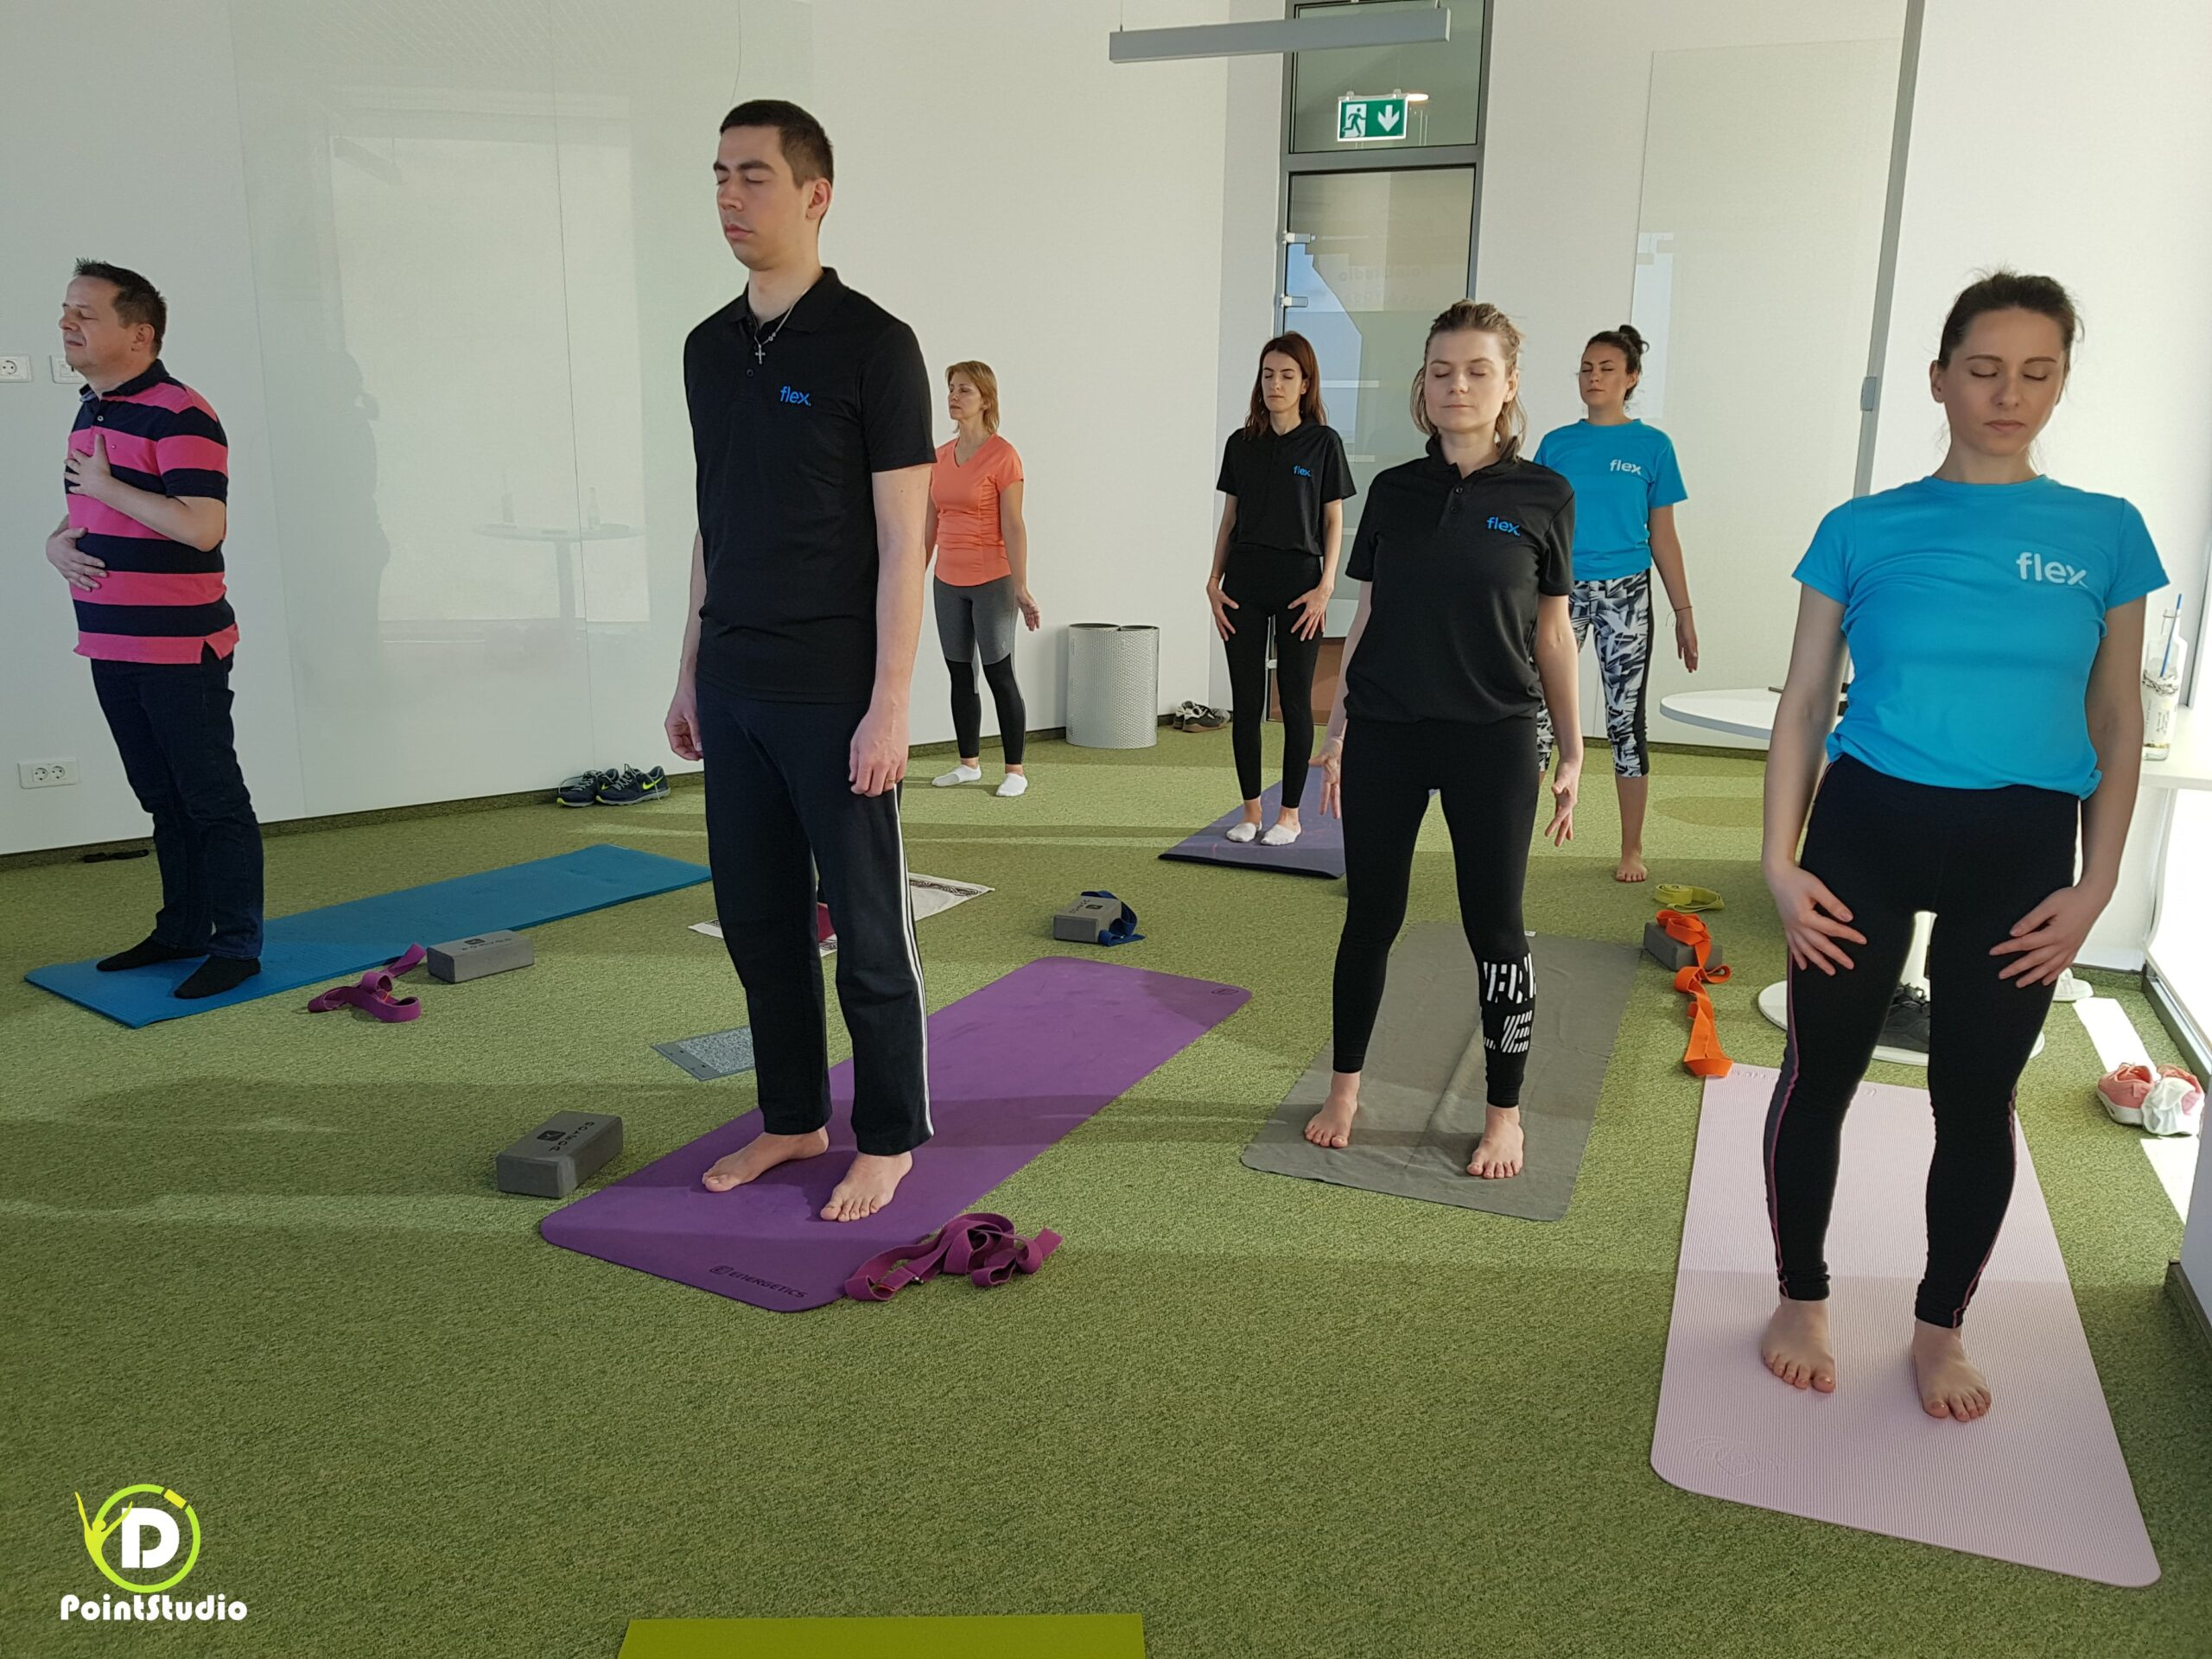 Yoga & Office Works - Flex Openville